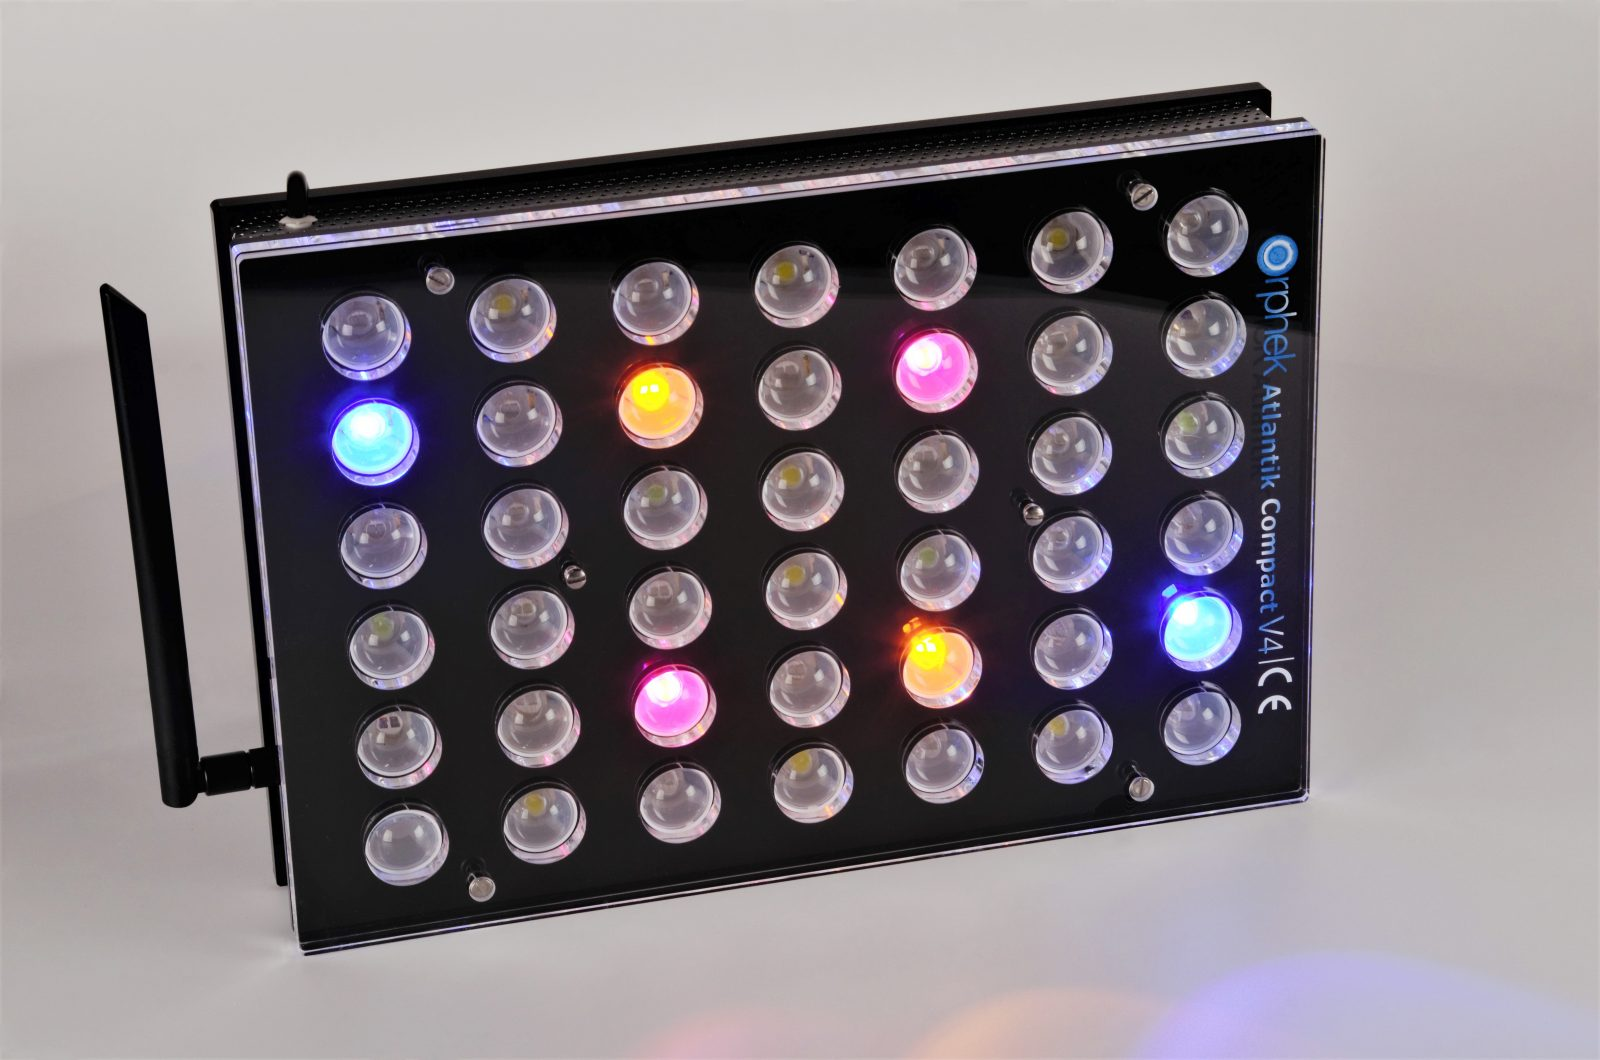 Orphek-Aquarium-LED-Lighting-Atlantik -Compact-V4-light -on -channel 4